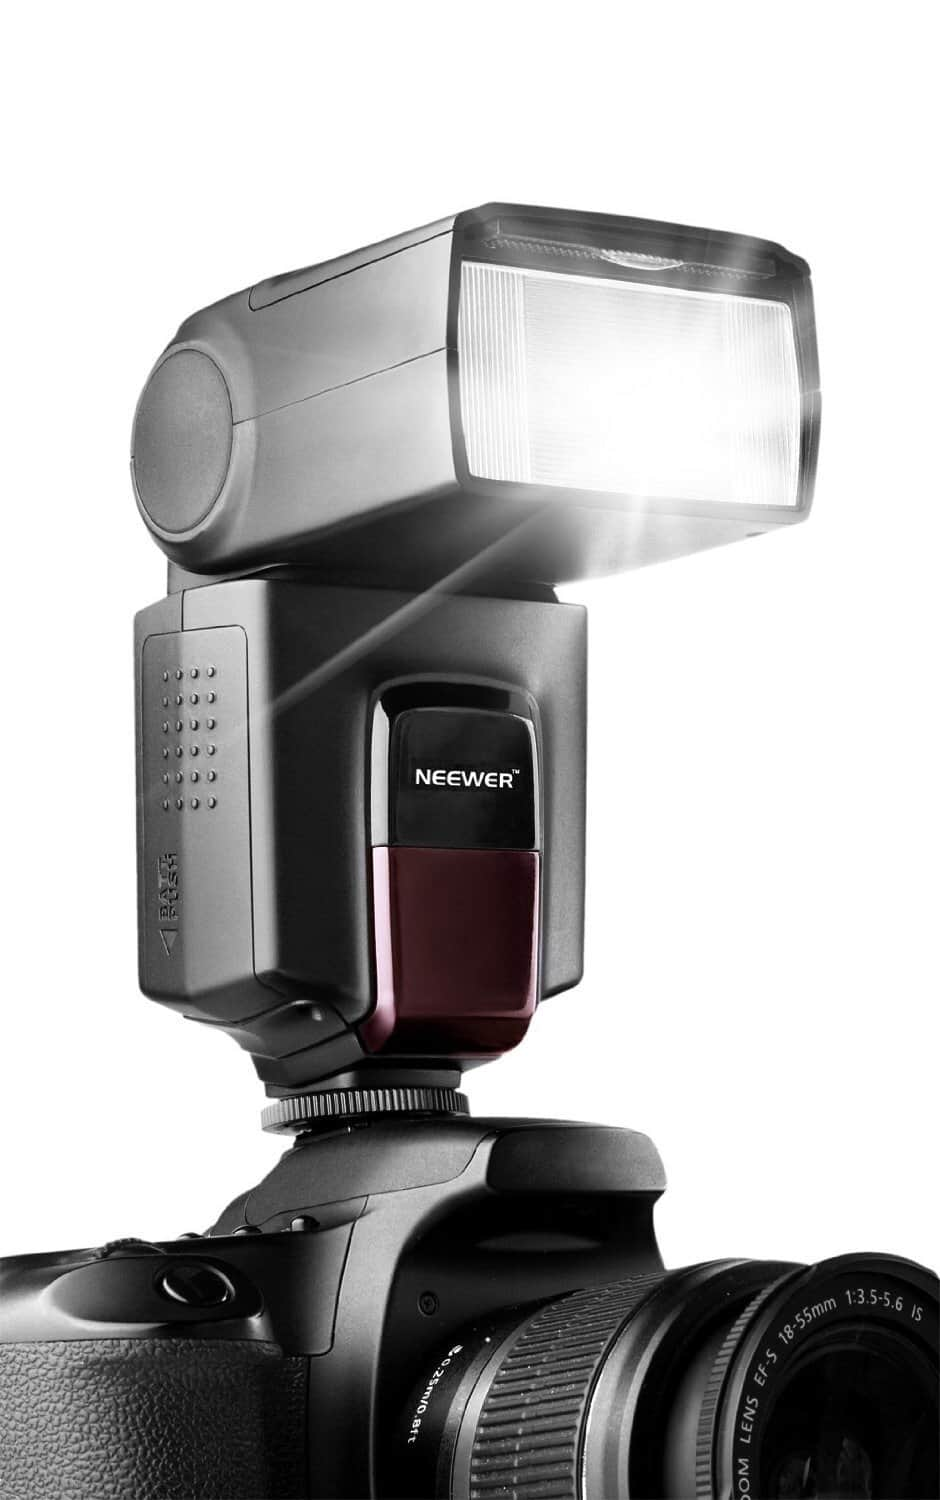 Neewer TT560 Flash Speedlite for Canon Nikon Panasonic Olympus Pentax and Other DSLR Cameras - 37% OFF + FS $25.19